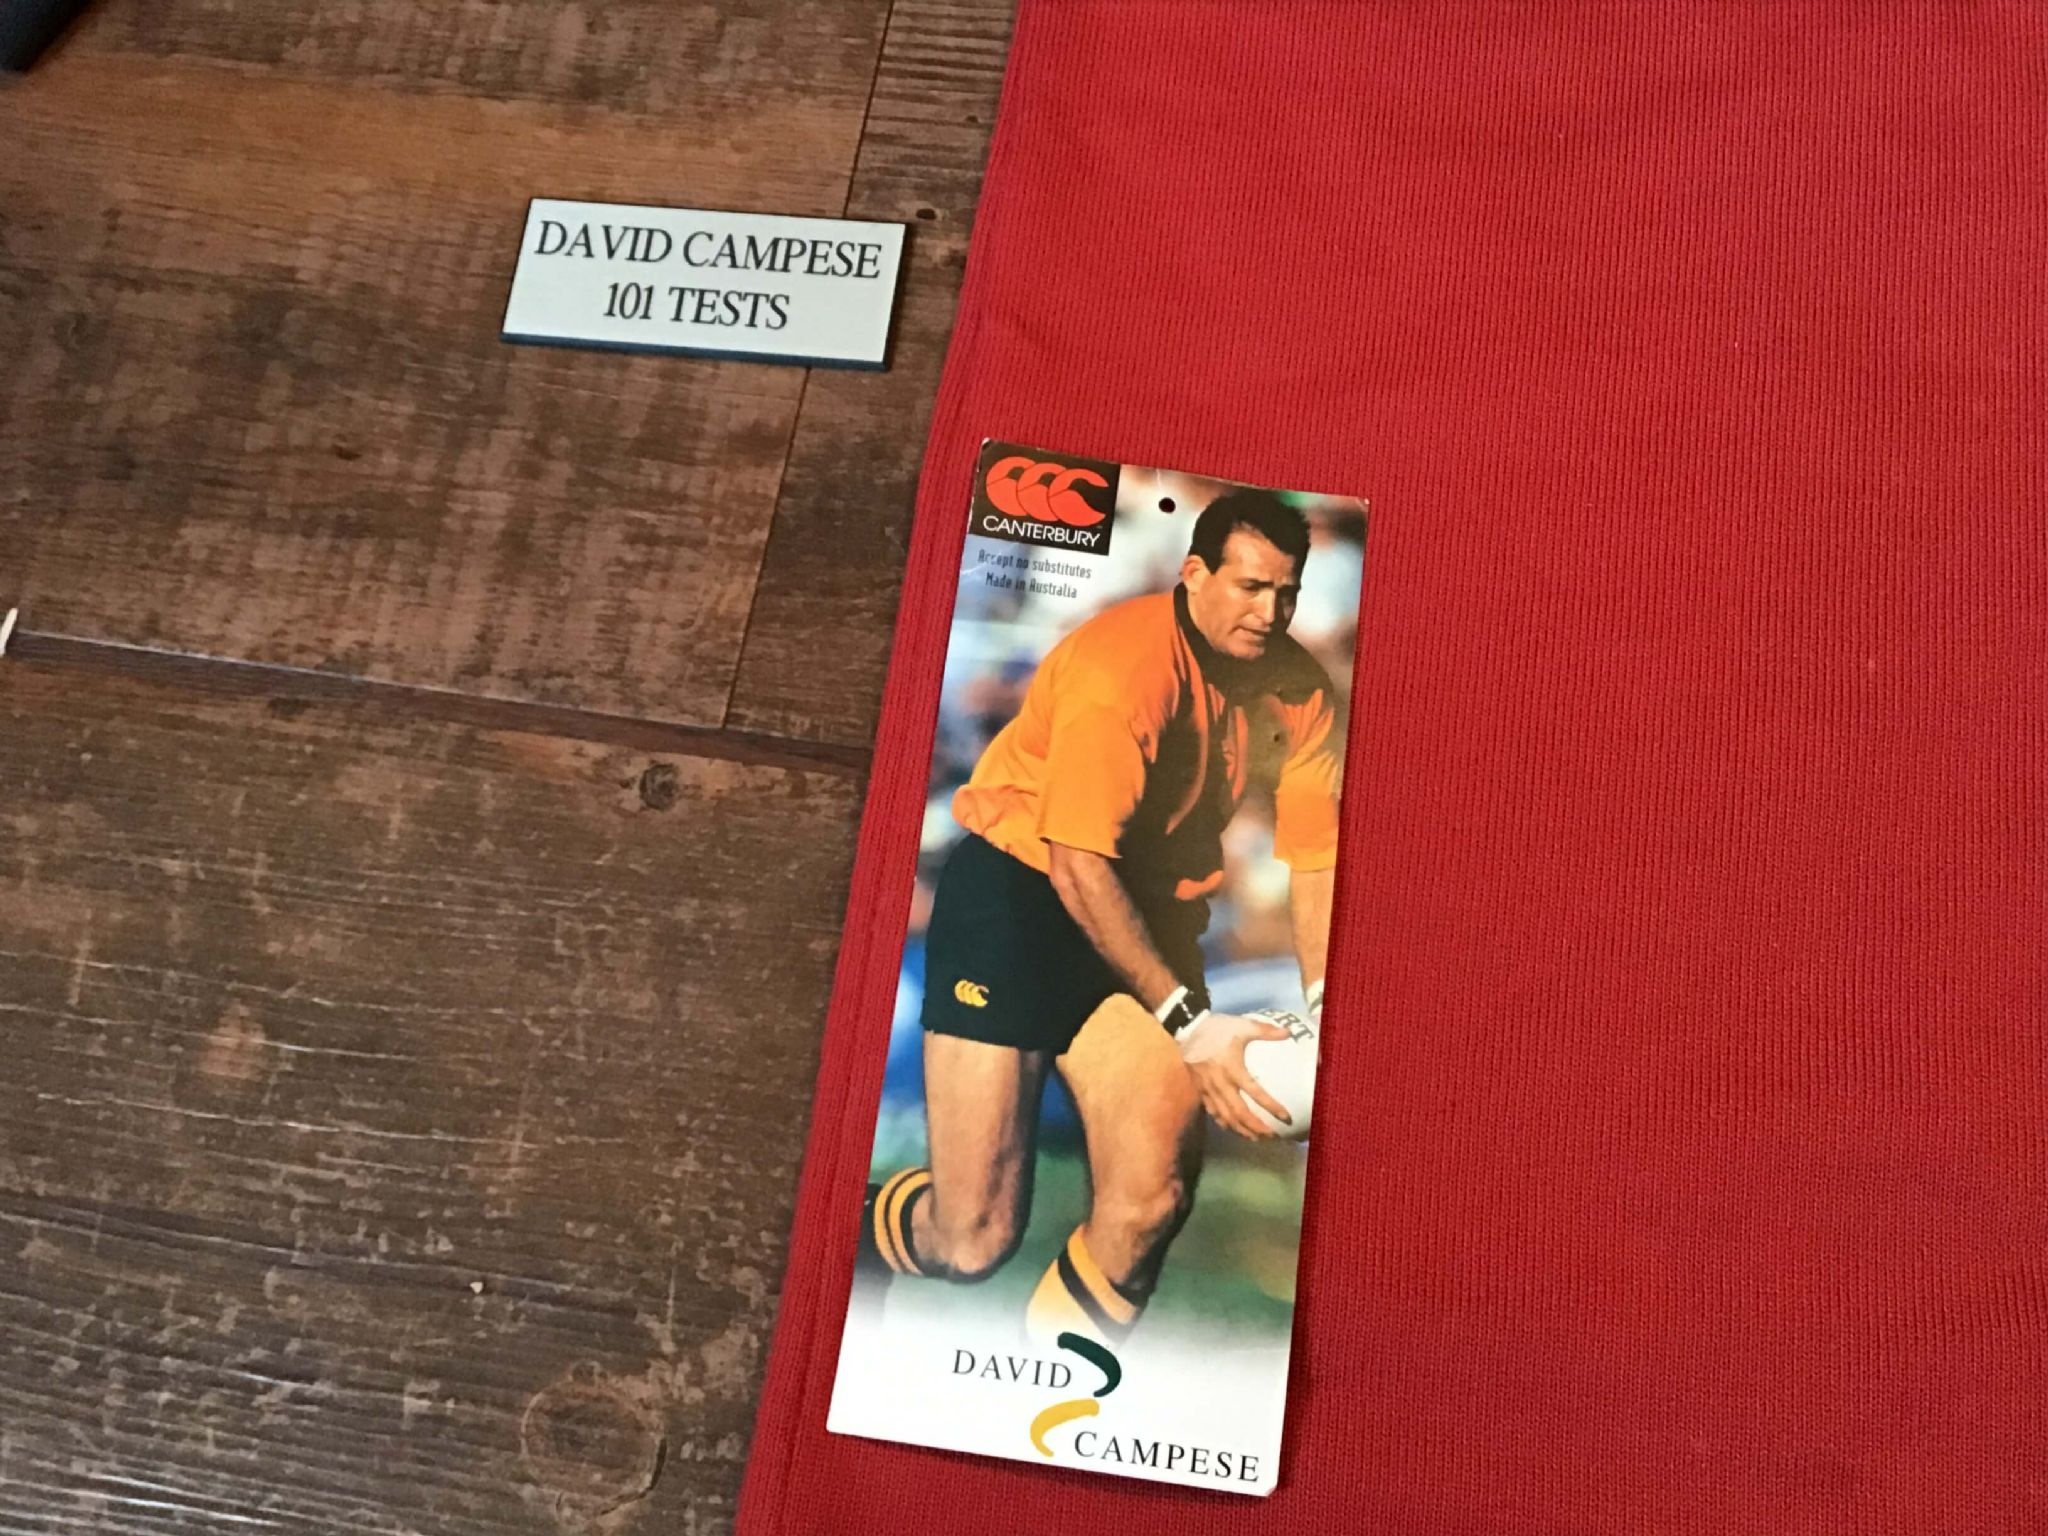 f7333857d46 Classic Rugby Shirts | 1996 Australia Campese Old Vintage Retro Jersey